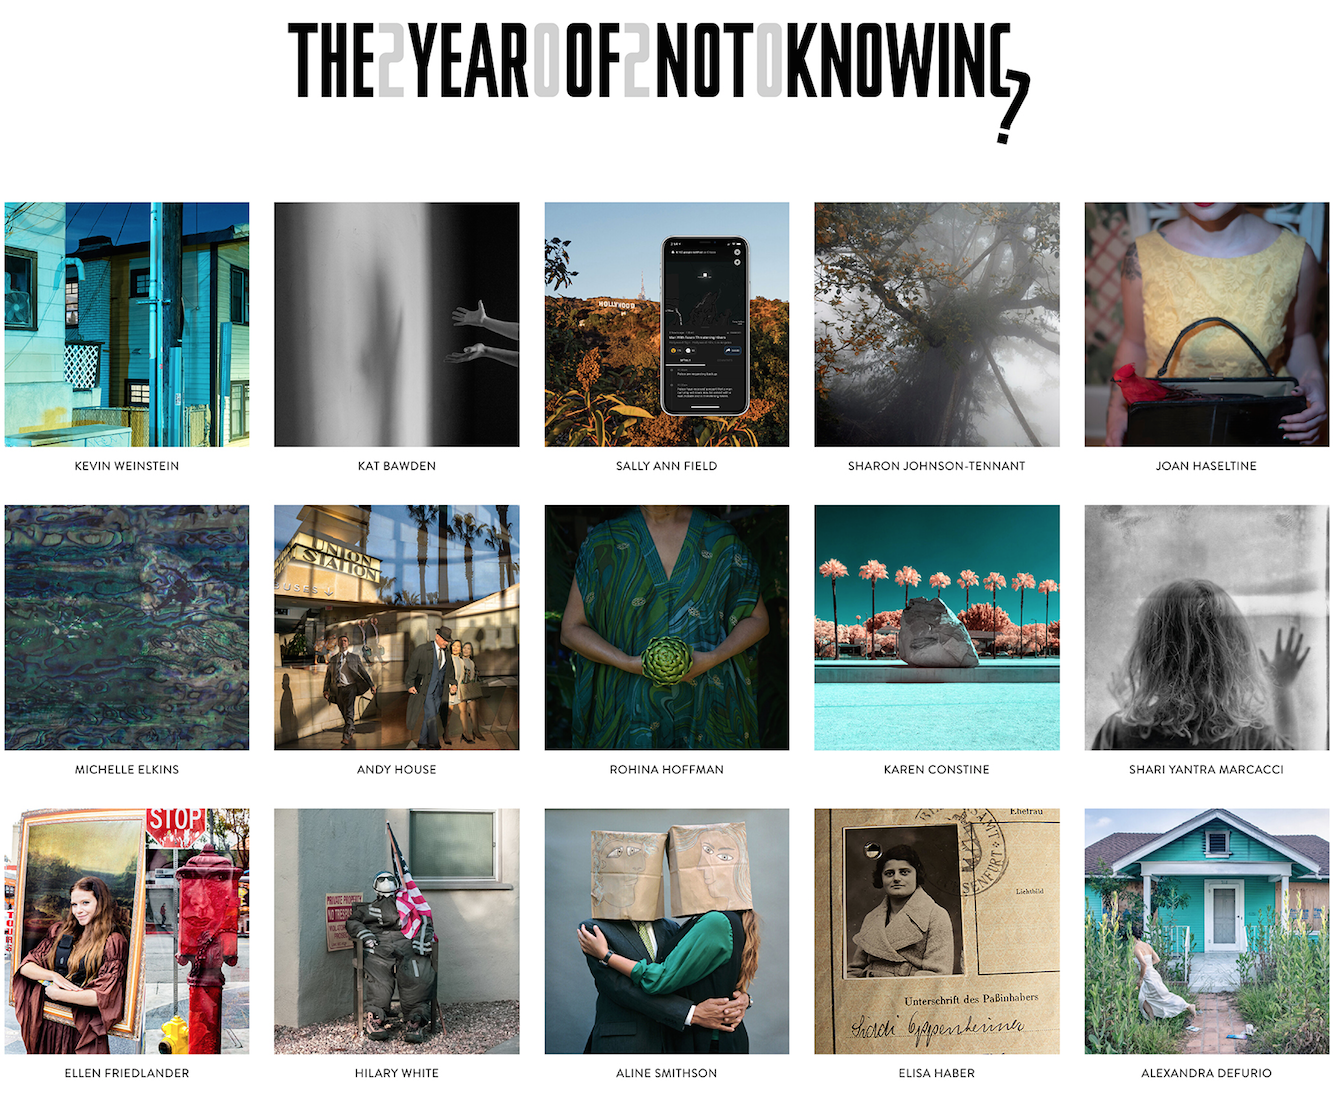 The Year of Not Knowing Exhibition